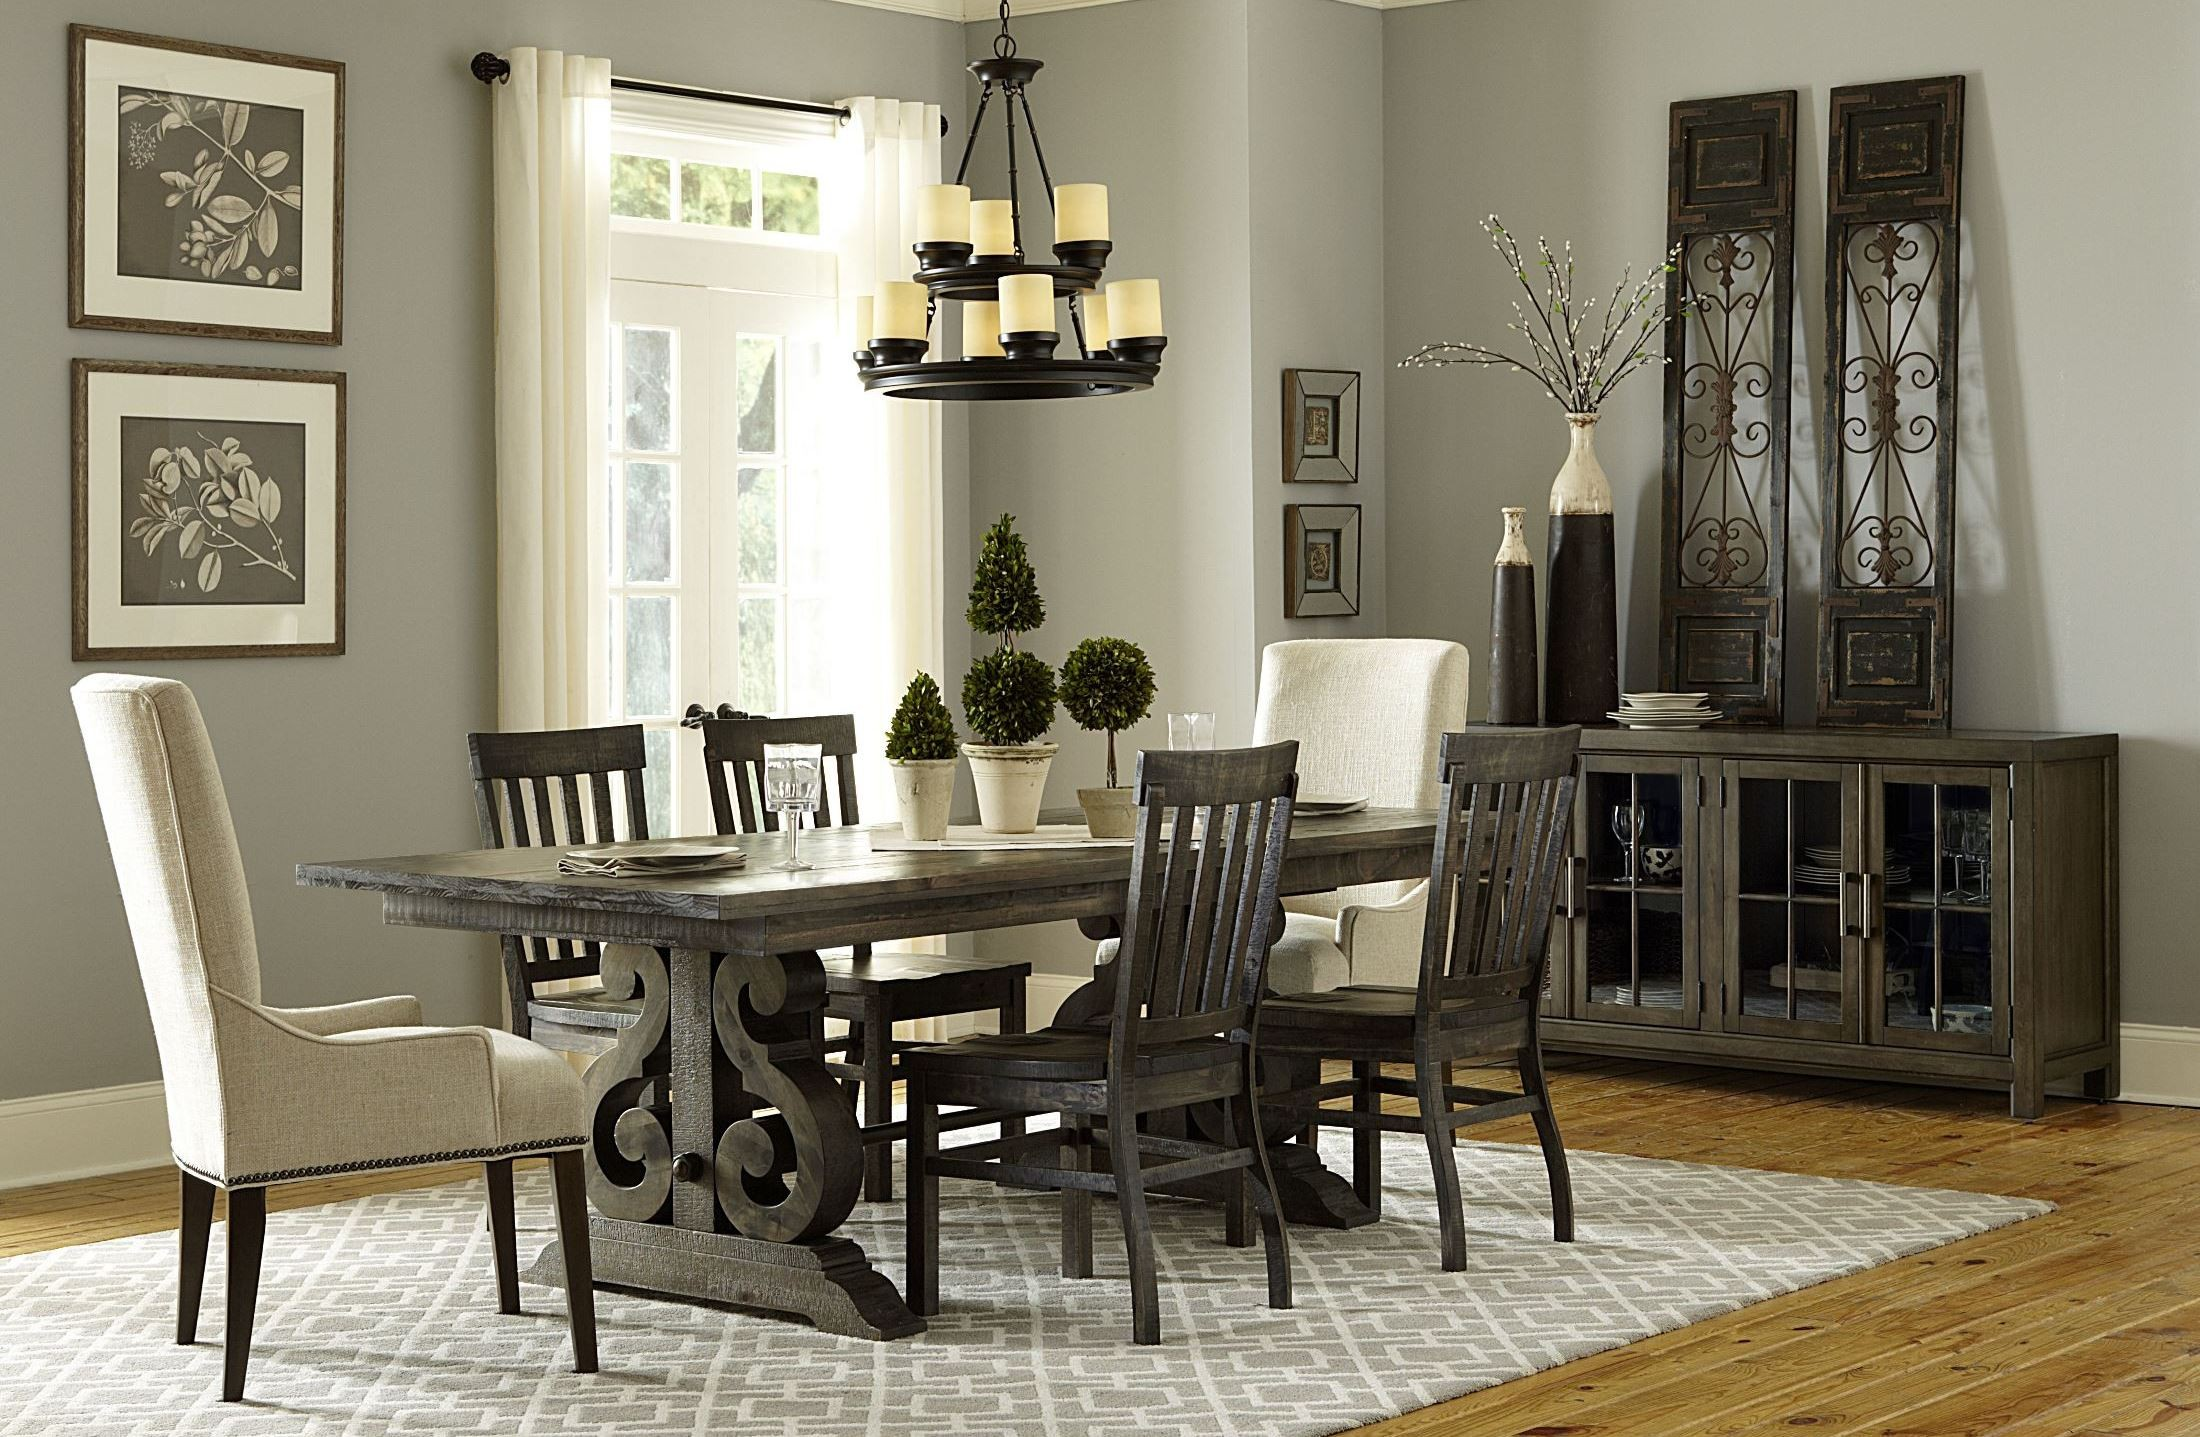 bellamy rectangular dining room set from magnussen home d2491 20t bellamy rectangular extendable dining room set